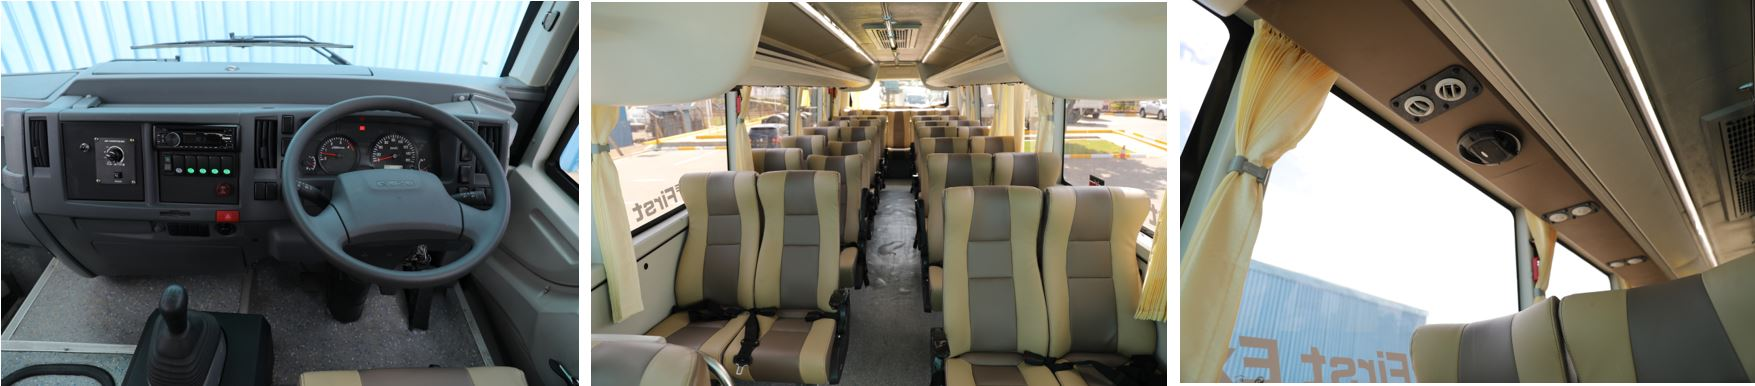 Zuri Luxury Bus for Leisure, Corporate and Educational Institutions